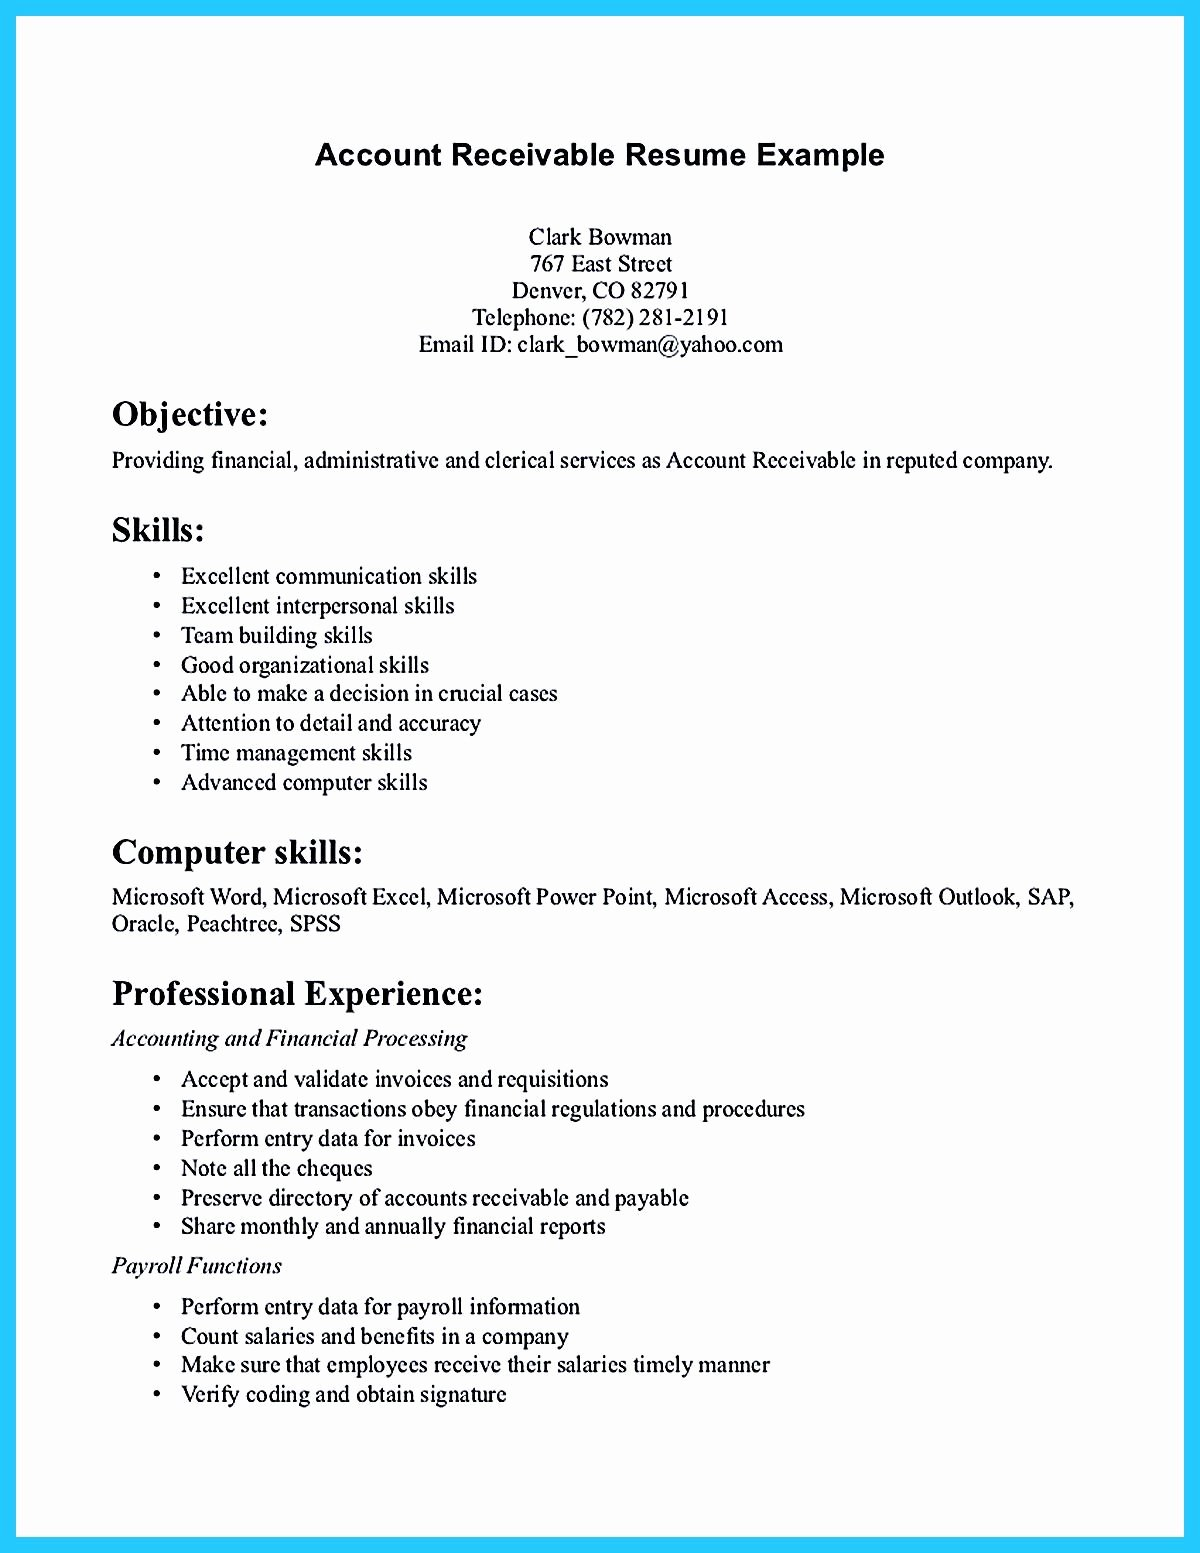 Accounts Receivable Resume Presents Both Skills and Also